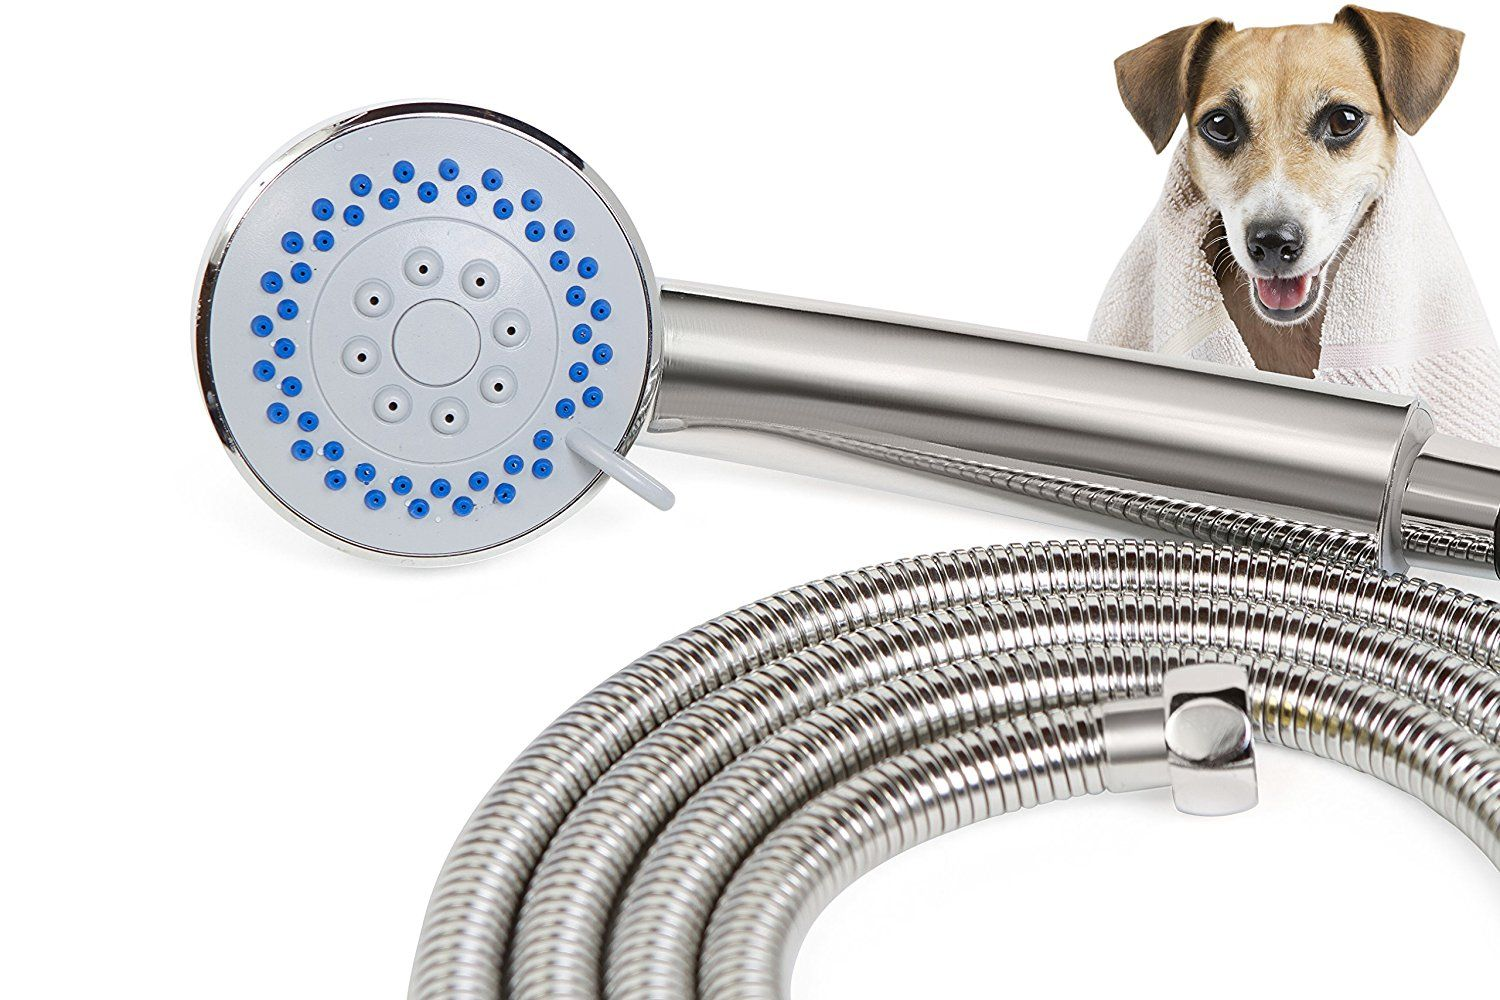 Smarterfresh Pet Faucet Sprayer Set Dog Shower For Home Dog